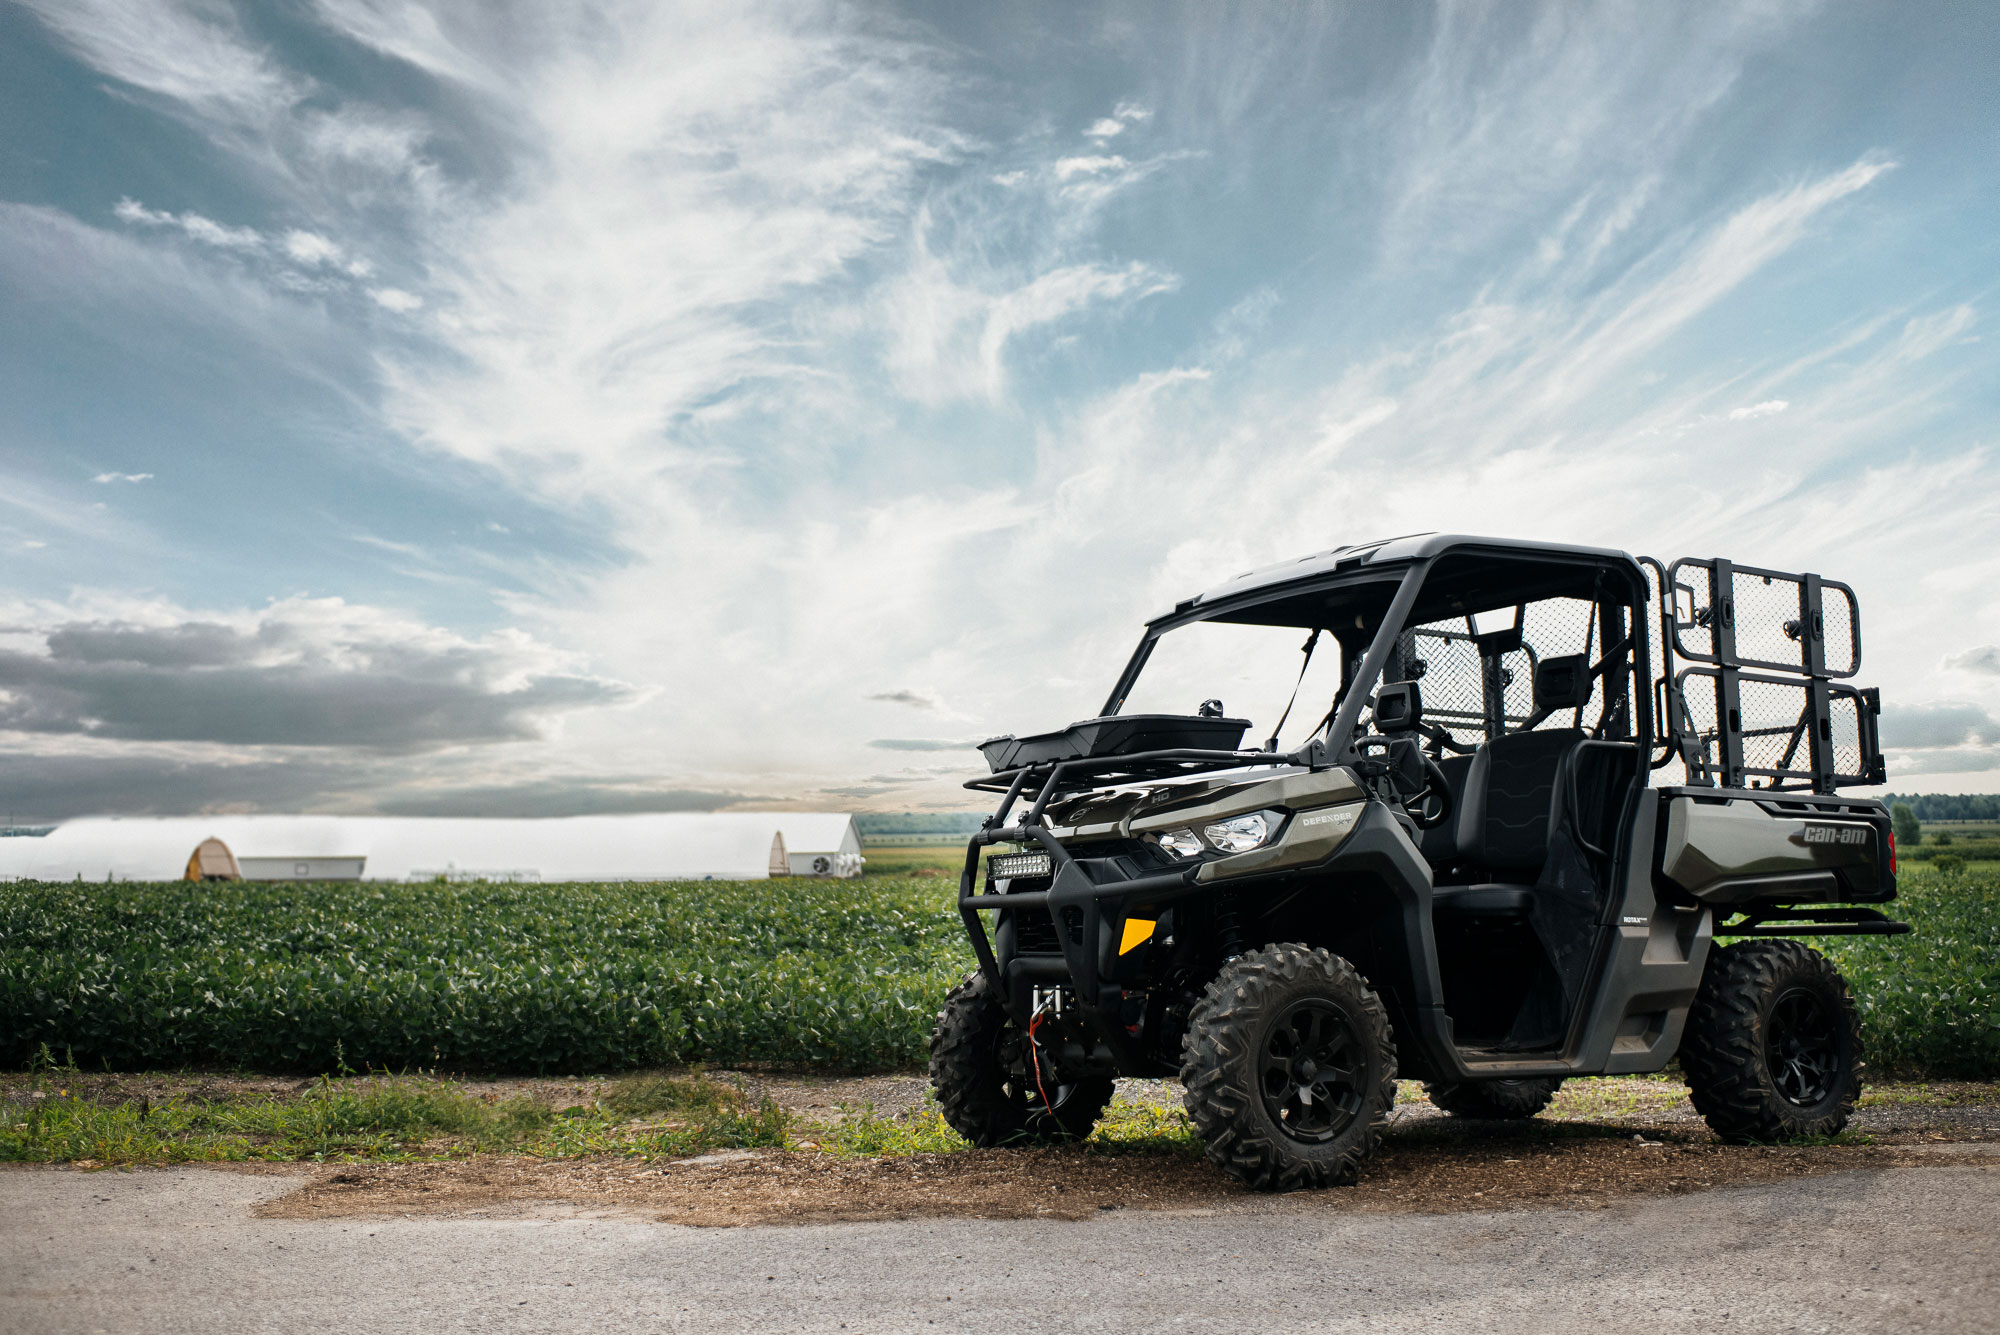 A customized Can-Am Defender XT side-by-side